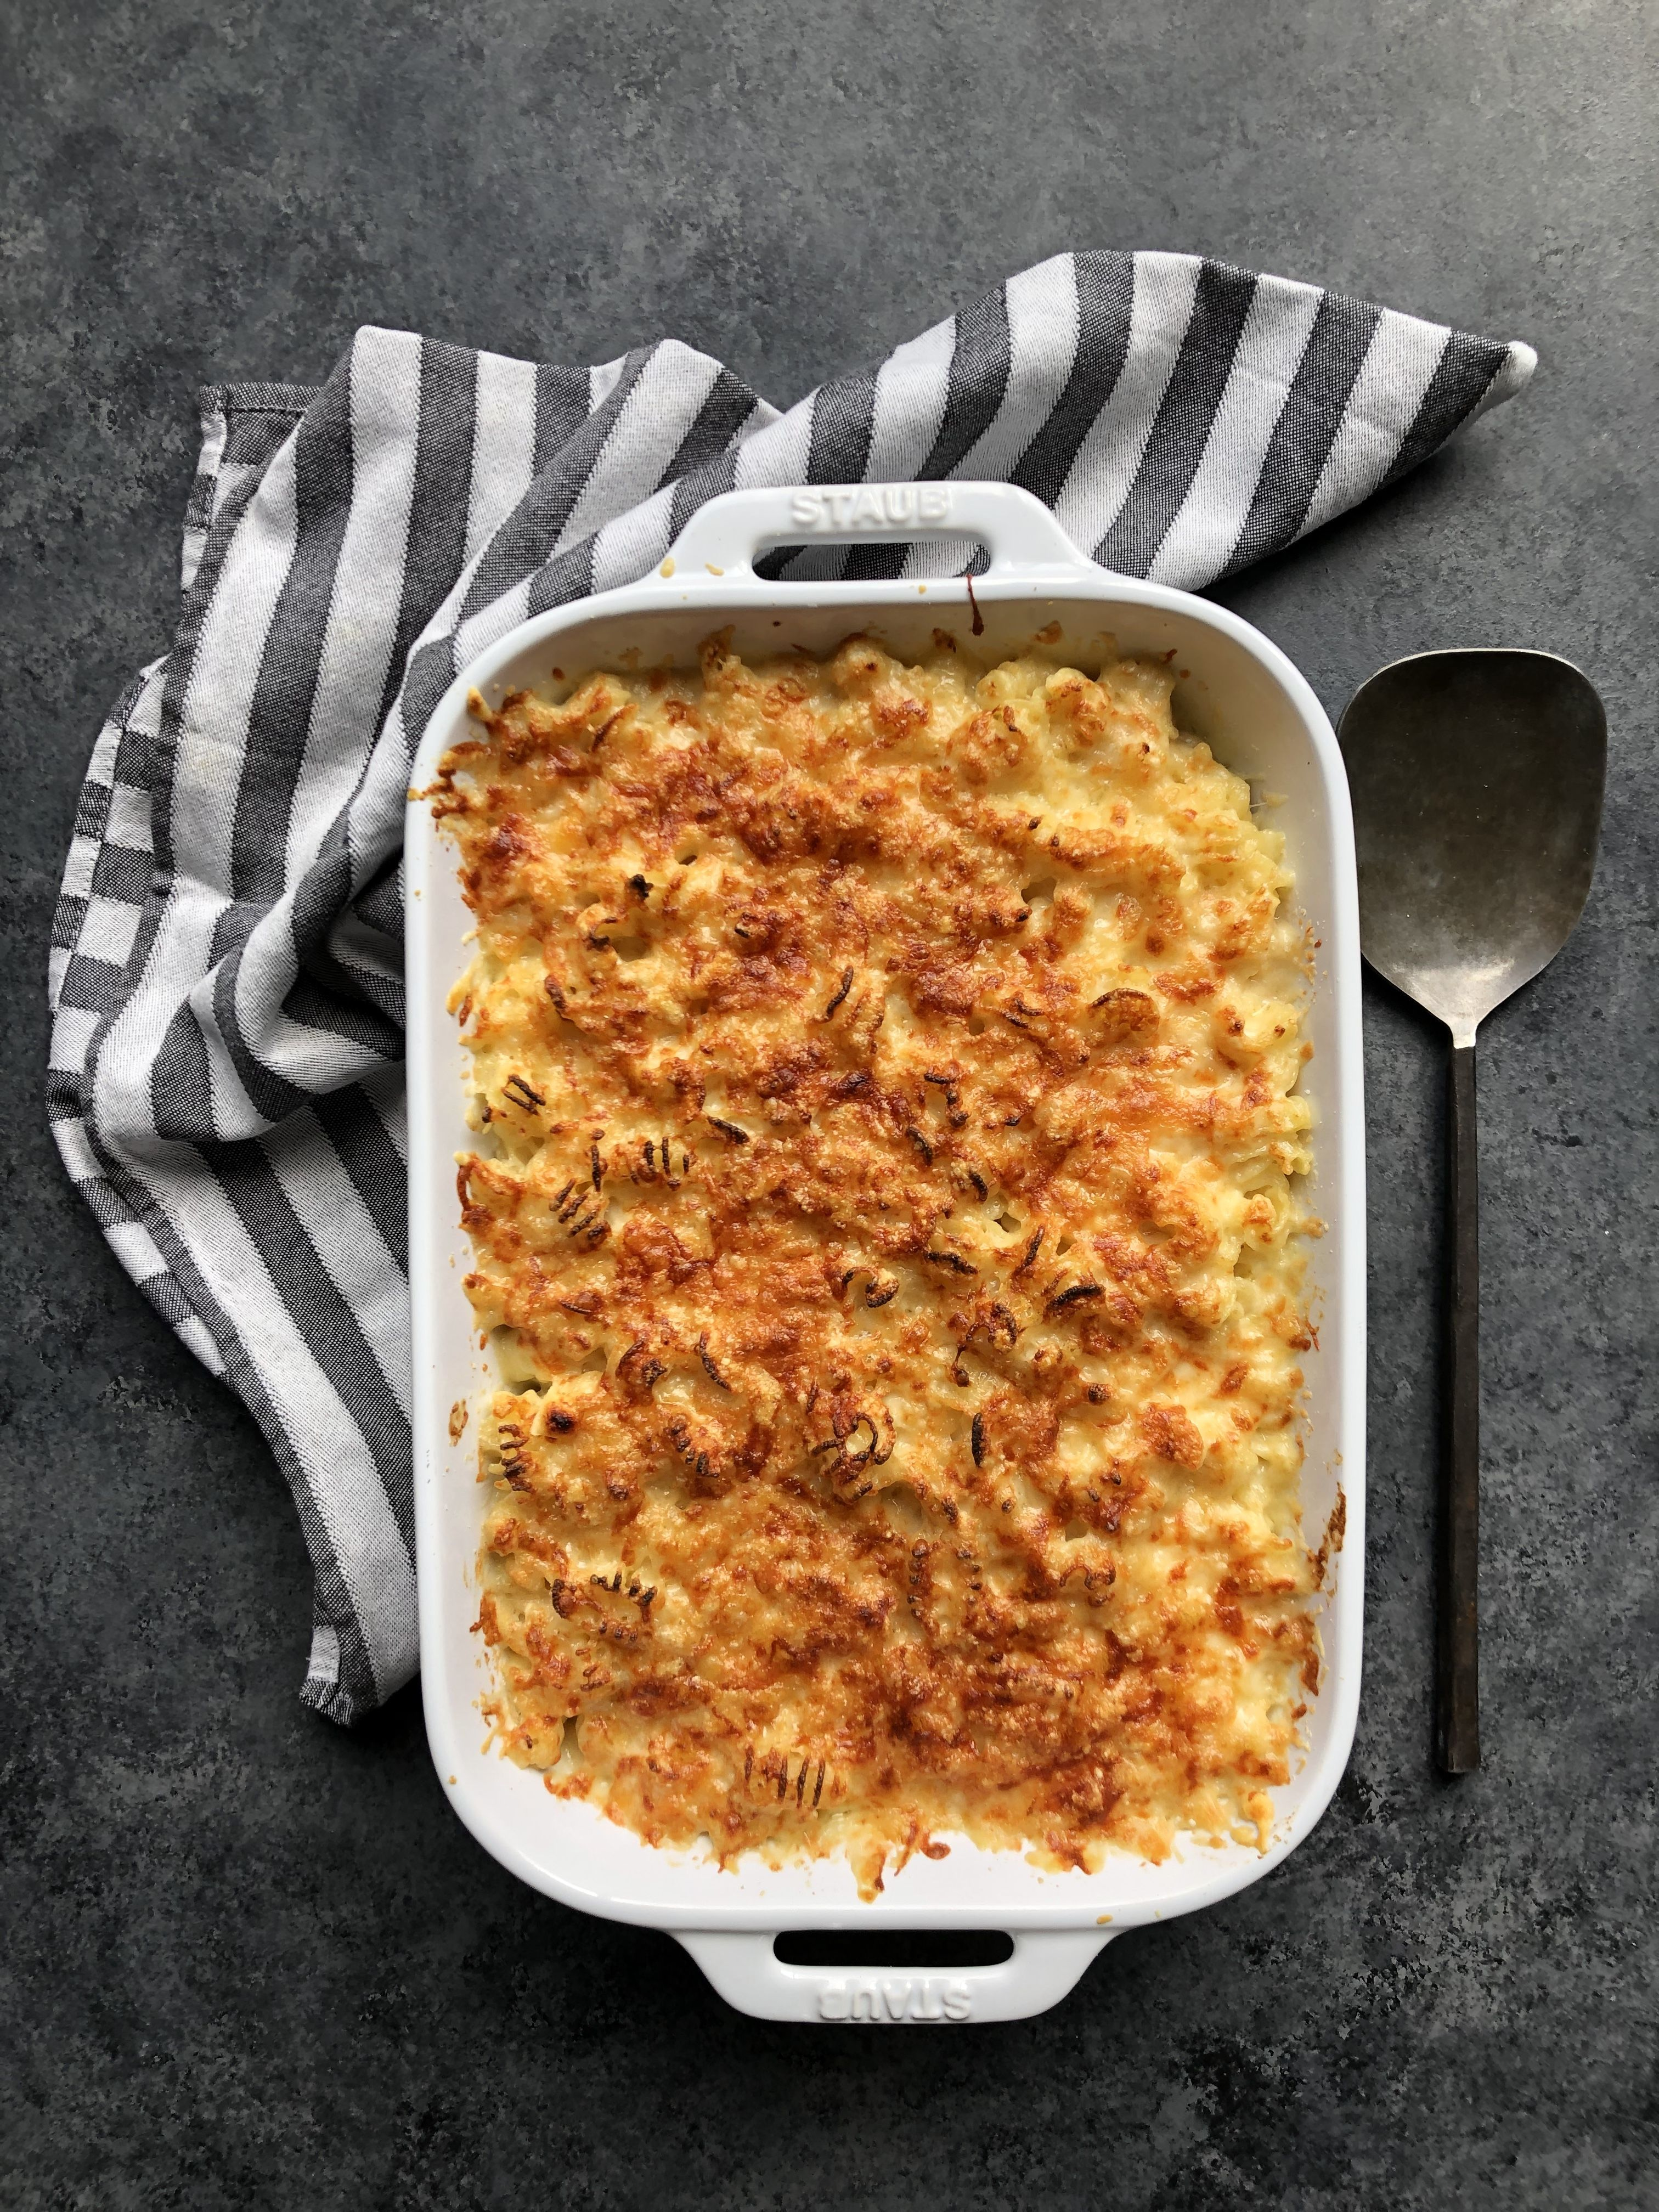 Crispy Baked Mac and Cheese